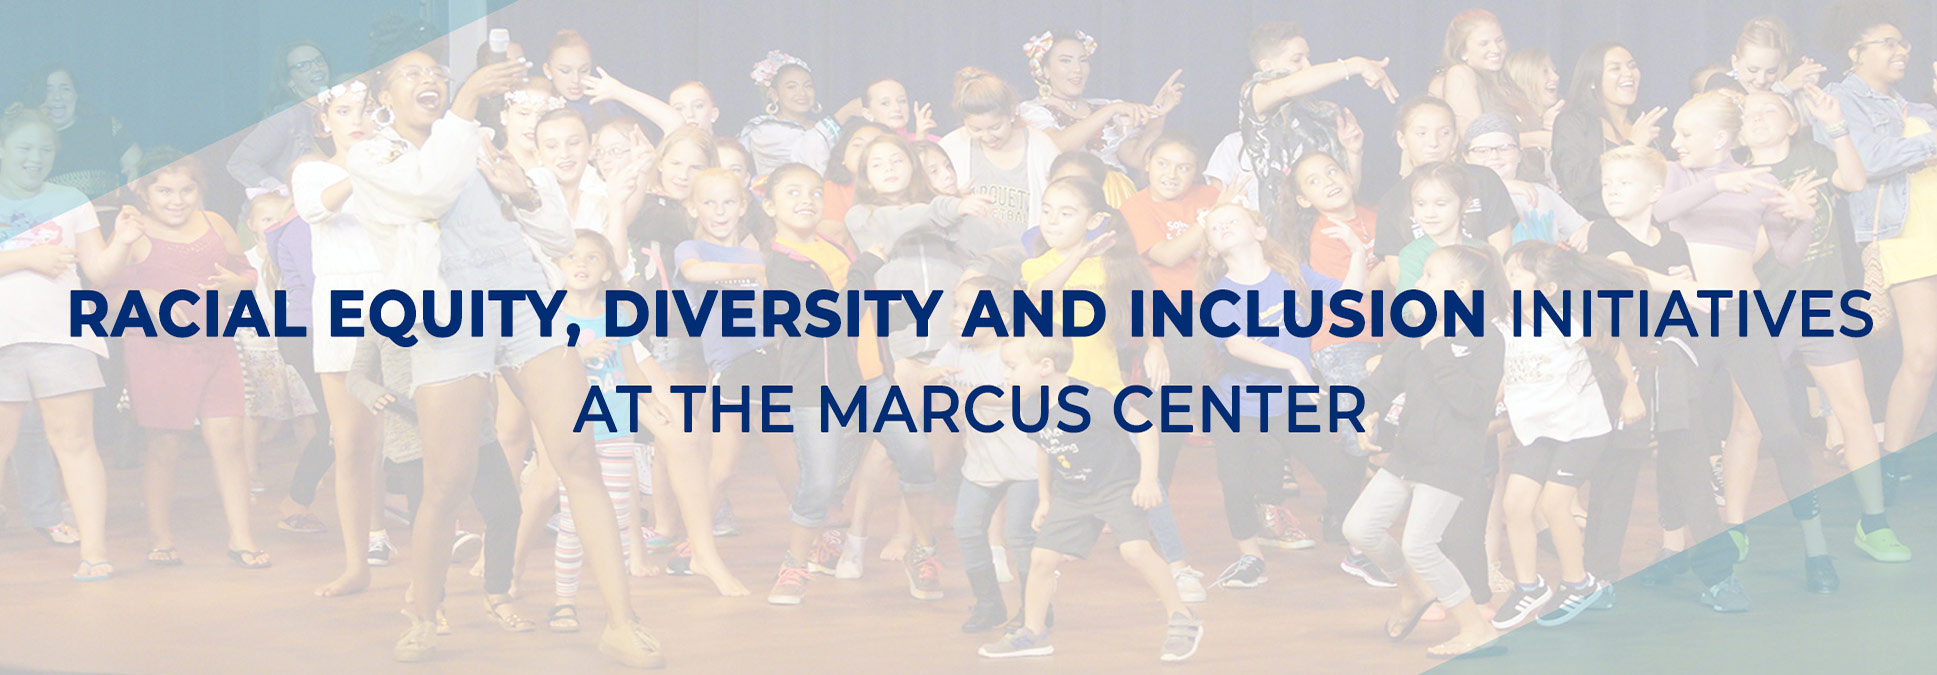 REDI Racial Equality Diversity and Inclusion at the Marcus Center